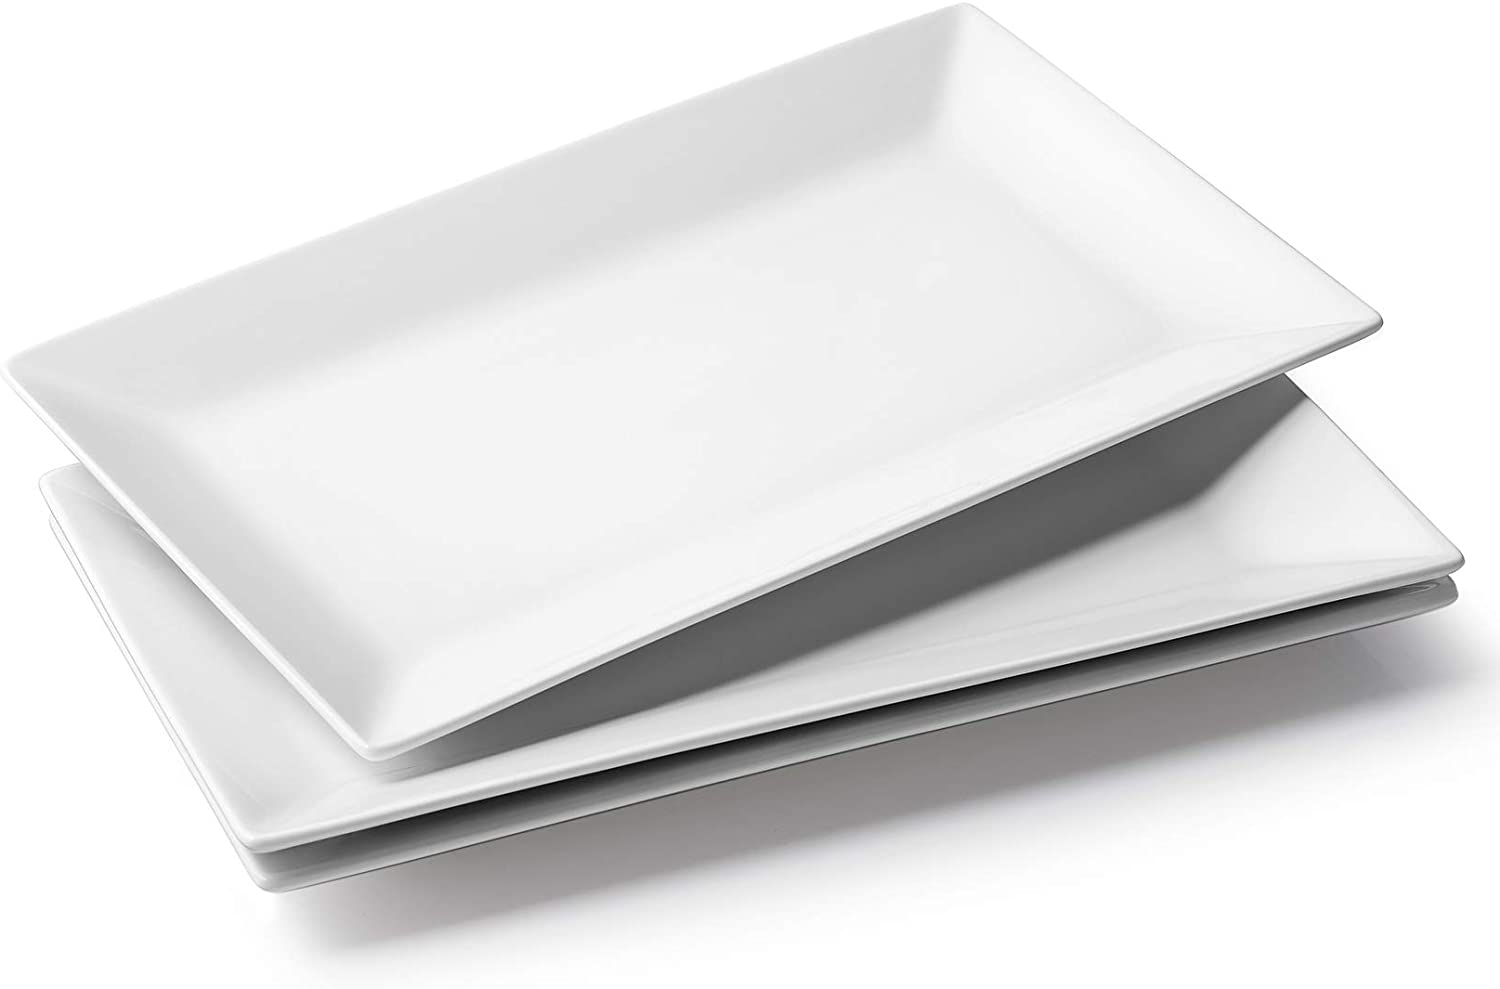 DOWAN Large Serving Platter - 14 Inches Serving Plates, White Rectangular Platter Oven Safe, Serving Platters and Trays for Parties, Ceramic Platter for Meat, Food, Appetizer, Set of 3, White